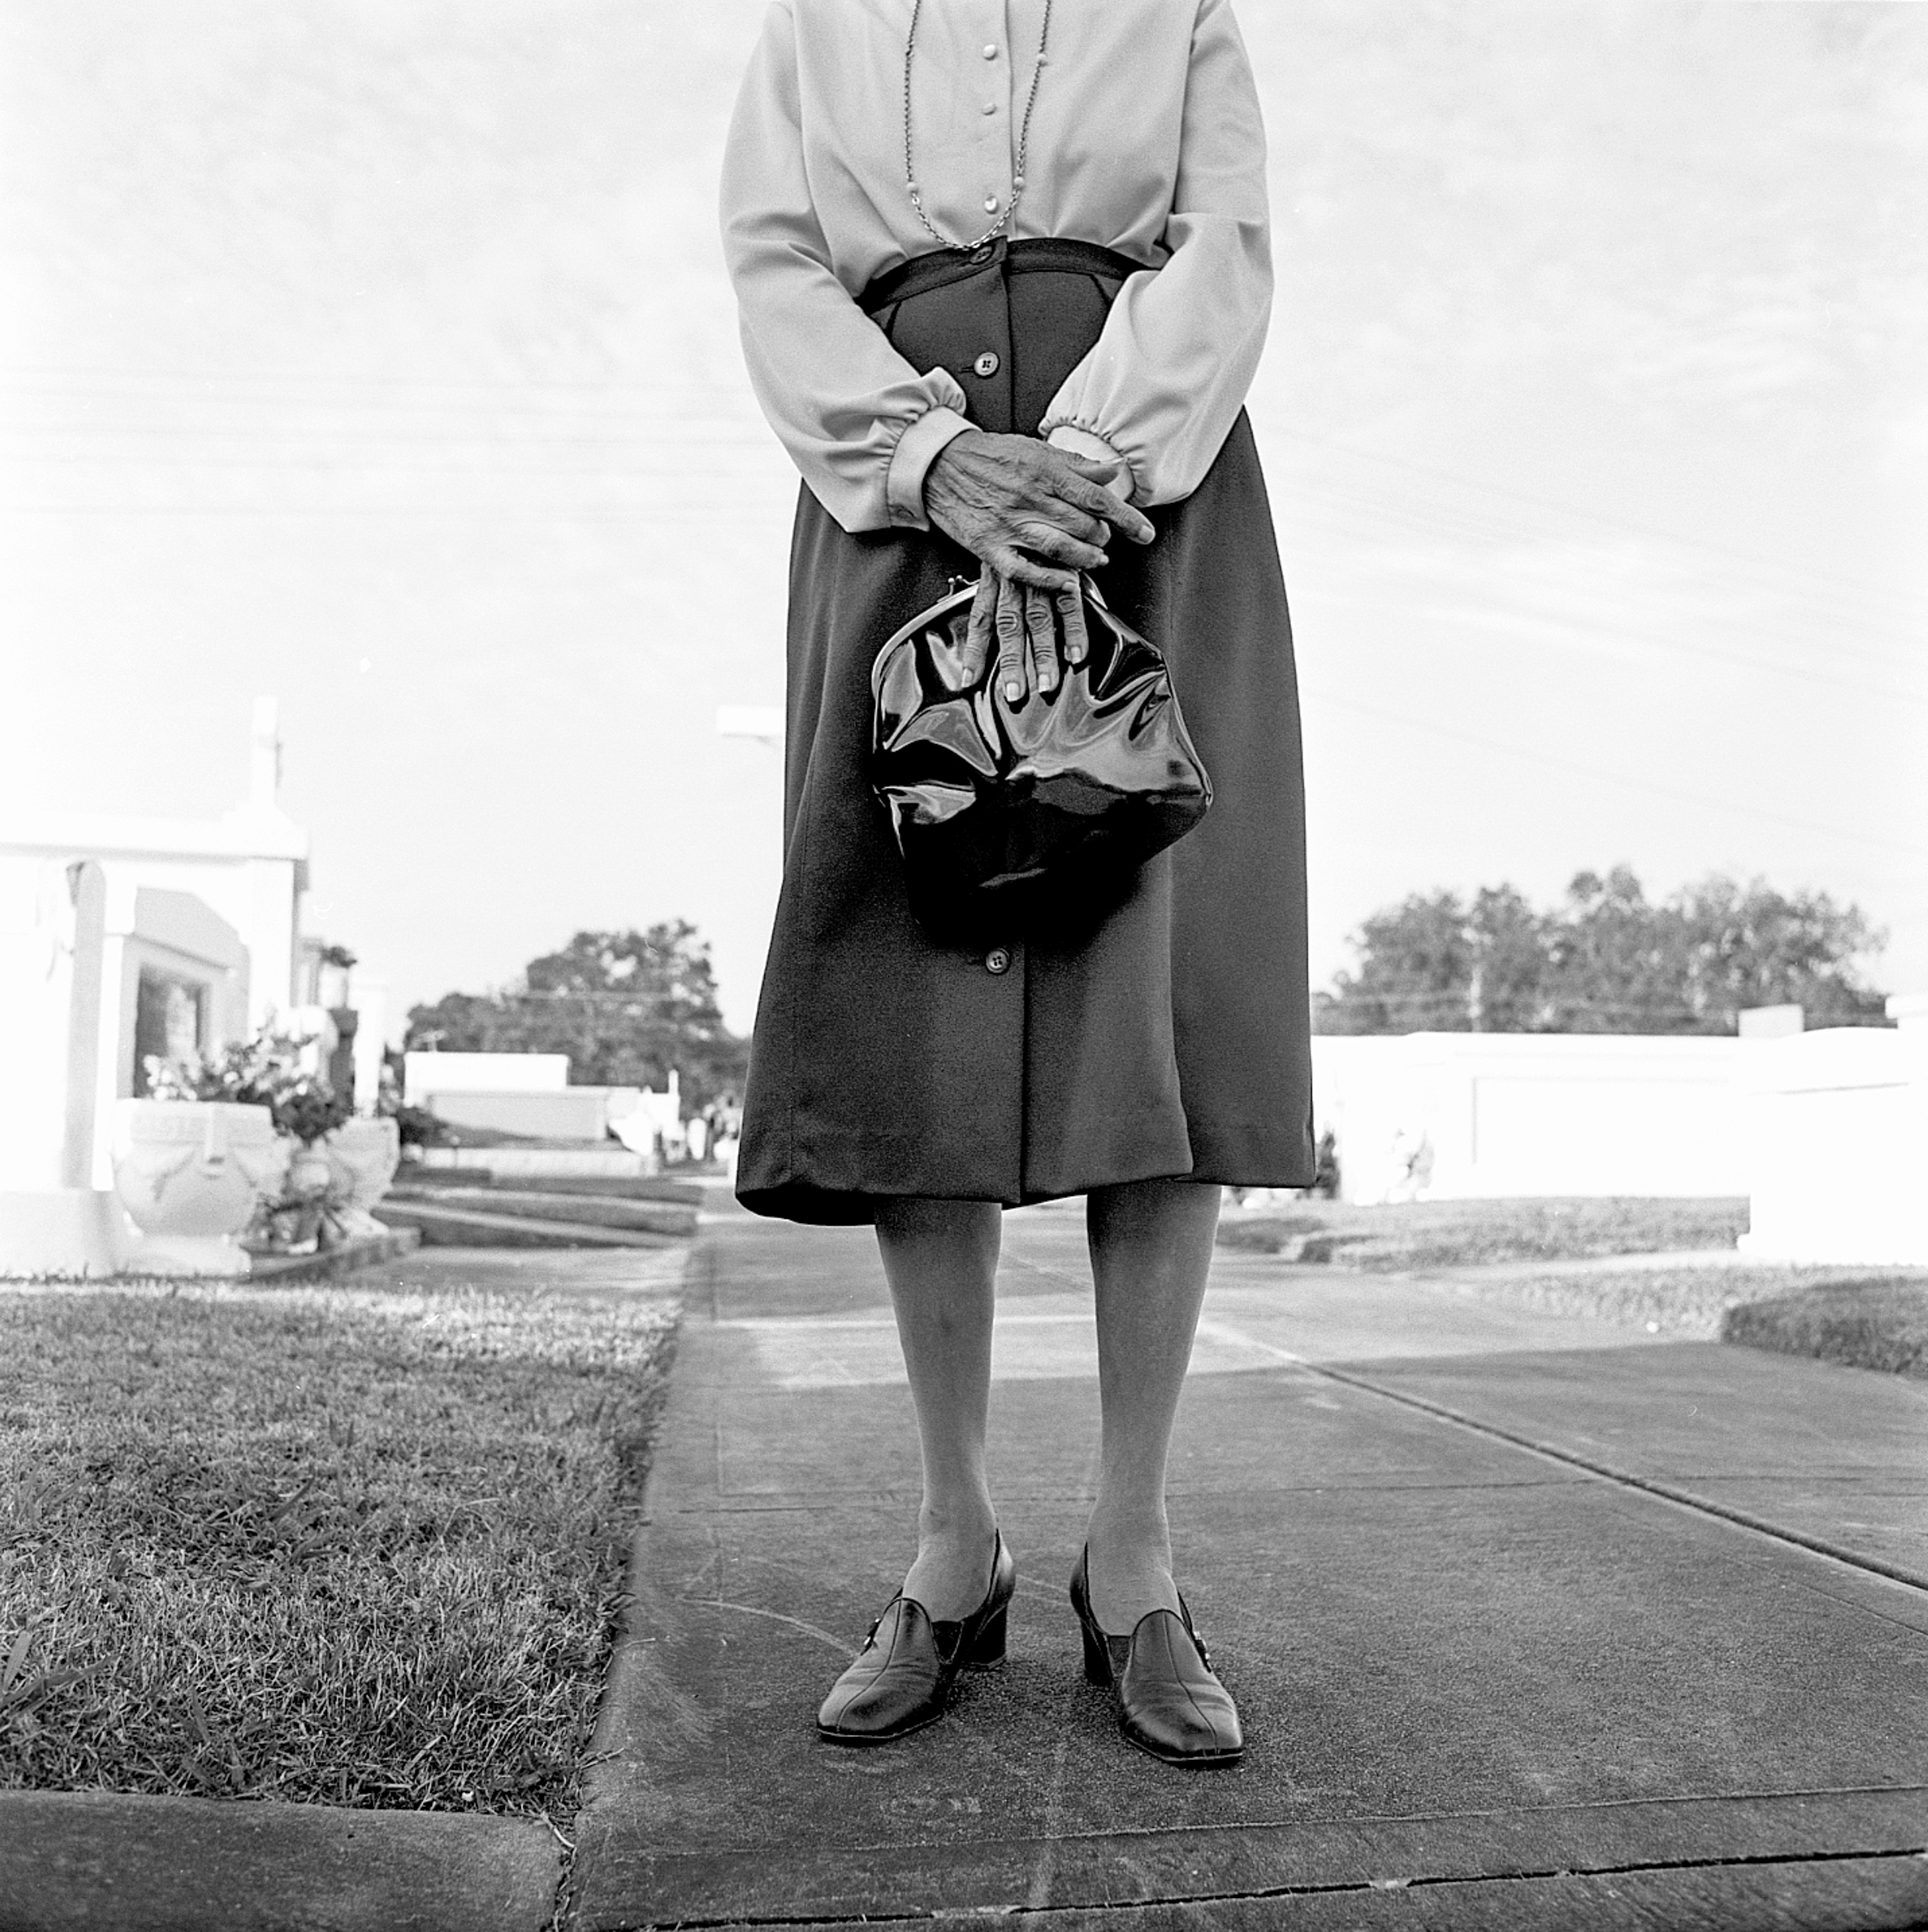 A woman visits the cemetery of St. Martinsville during All Saints Day, Louisiana, 1997